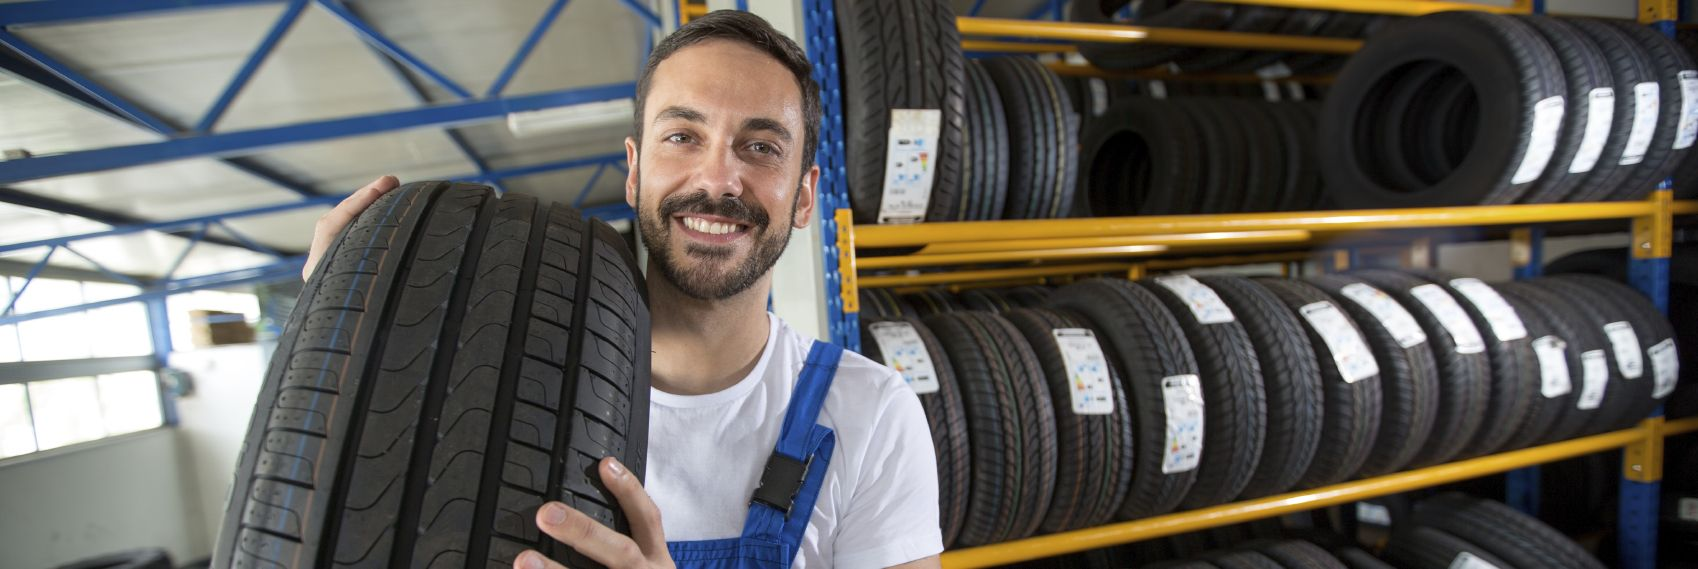 Buy 3 Get 1 for a Dollar Tire Deal